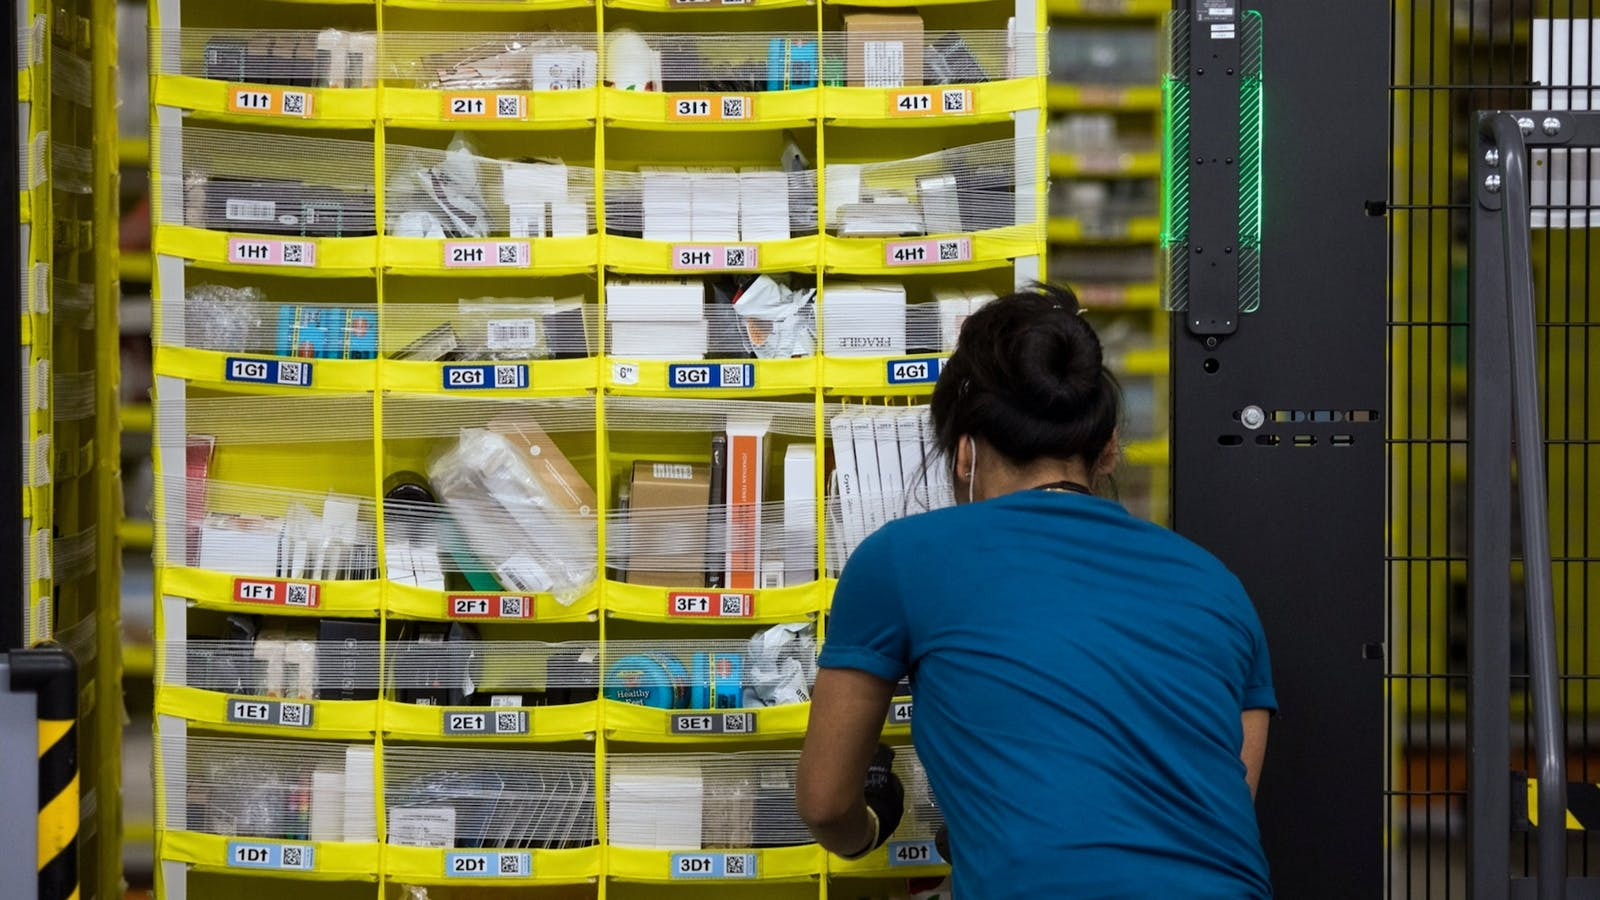 A worker at a picking station at an Amazon warehouse. Photo by Bloomberg